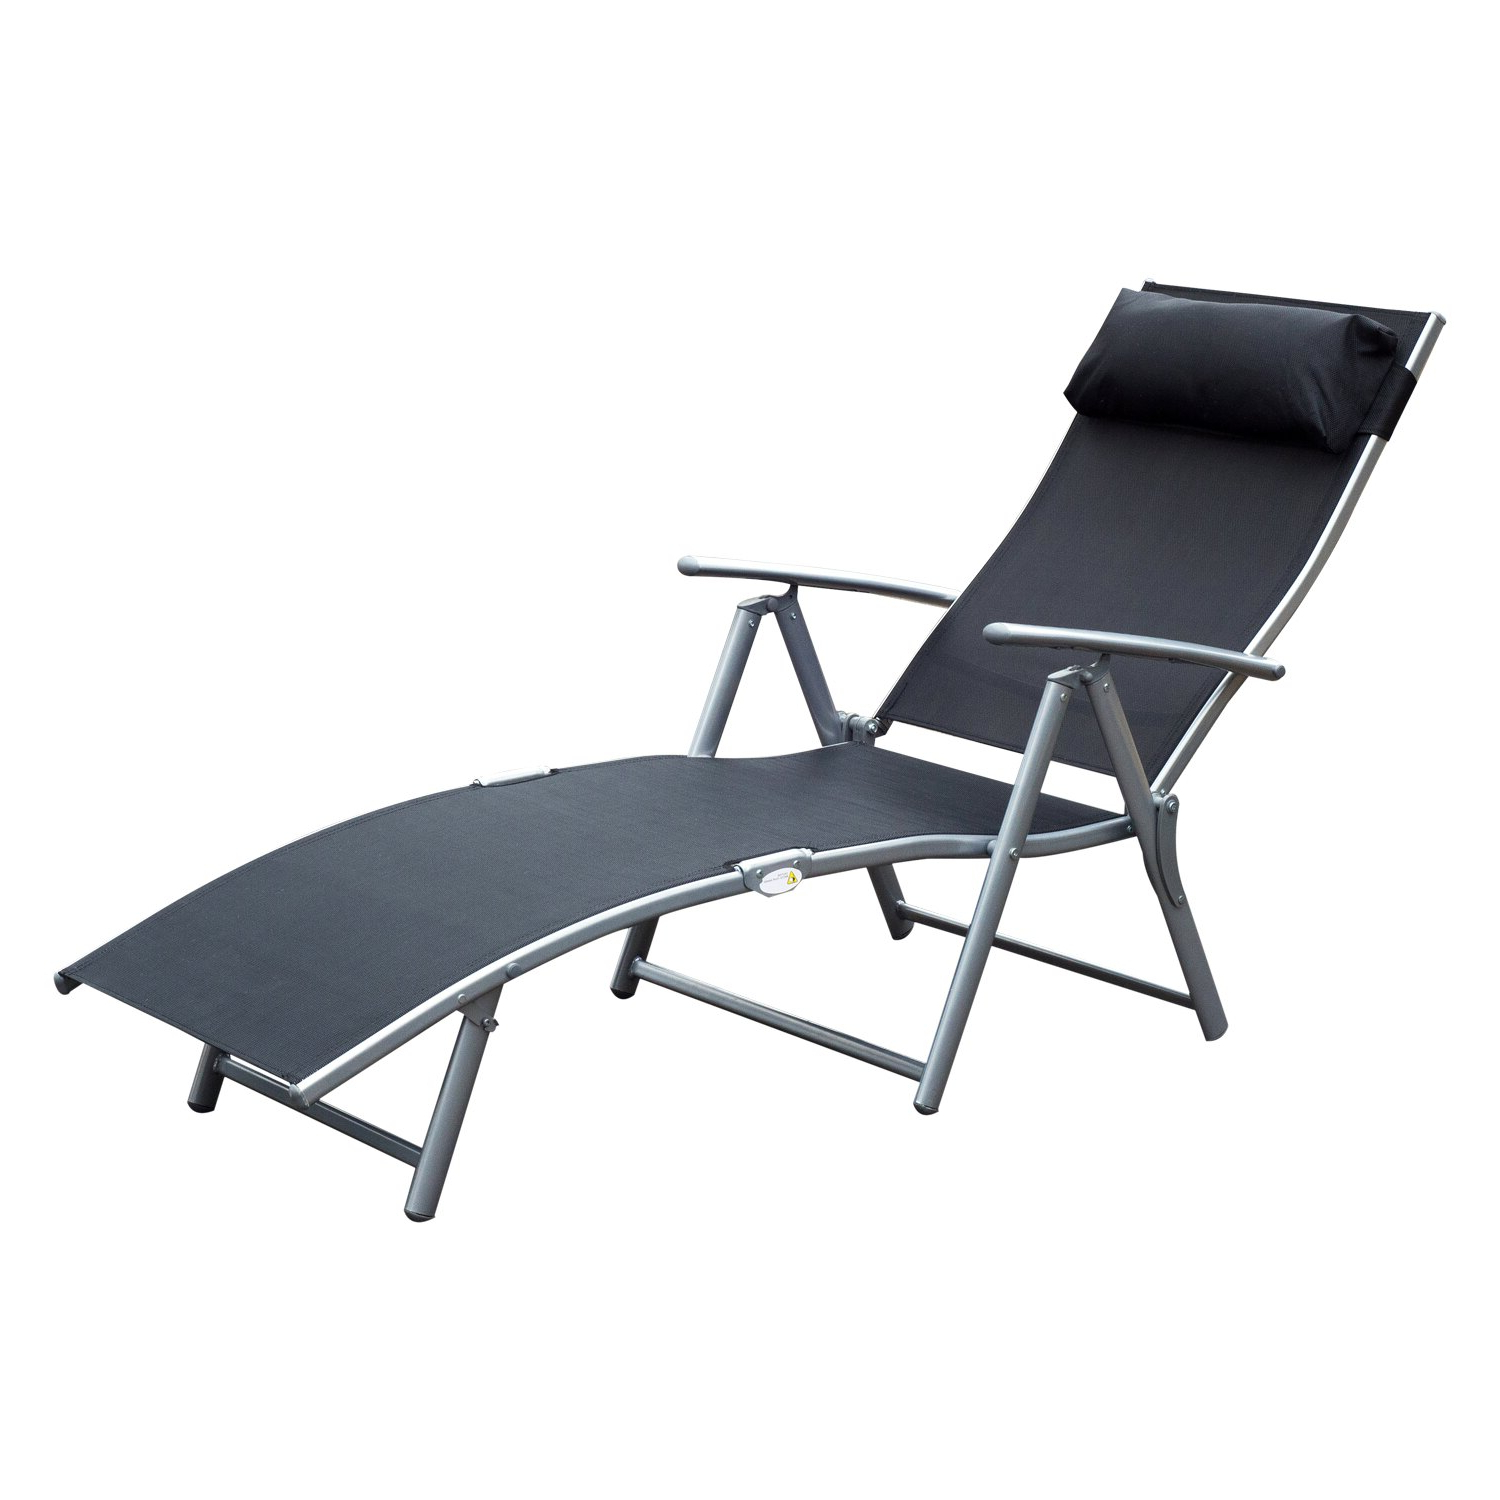 Fabric Reclining Outdoor Chaise Lounges With Regard To Trendy Outsunny Sling Fabric Patio Reclining Chaise Lounge Chair Folding 5  Position Adjustable Outdoor Deck With Cushion – Black (View 9 of 25)